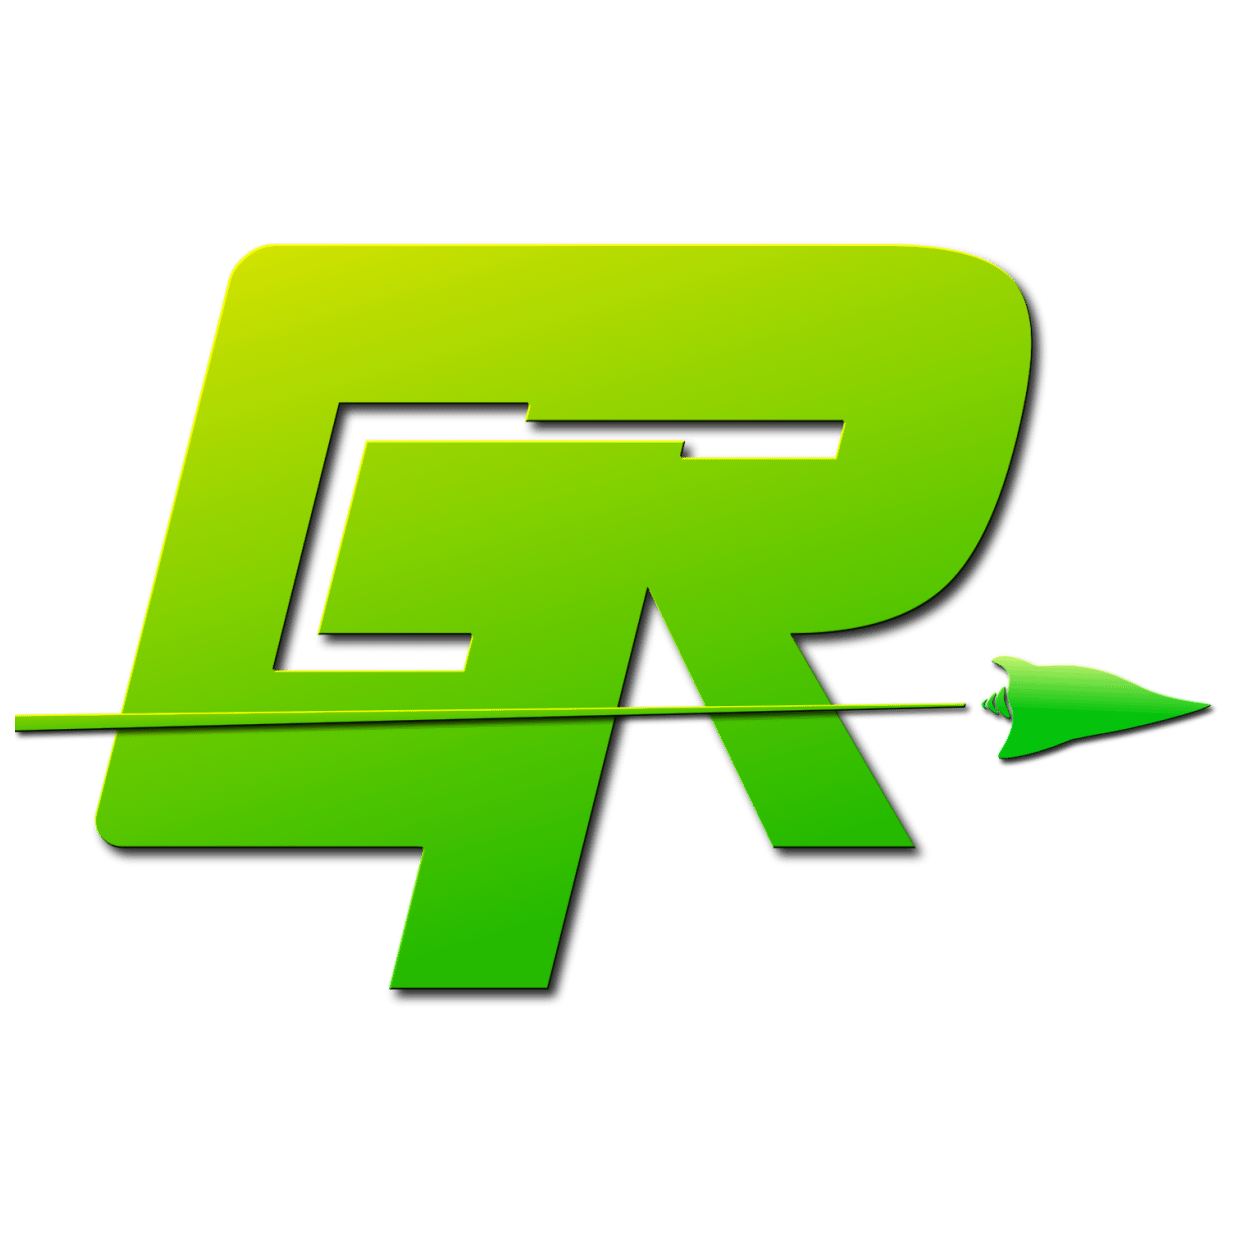 Green Rocket Digital | 2020 Online Marketing